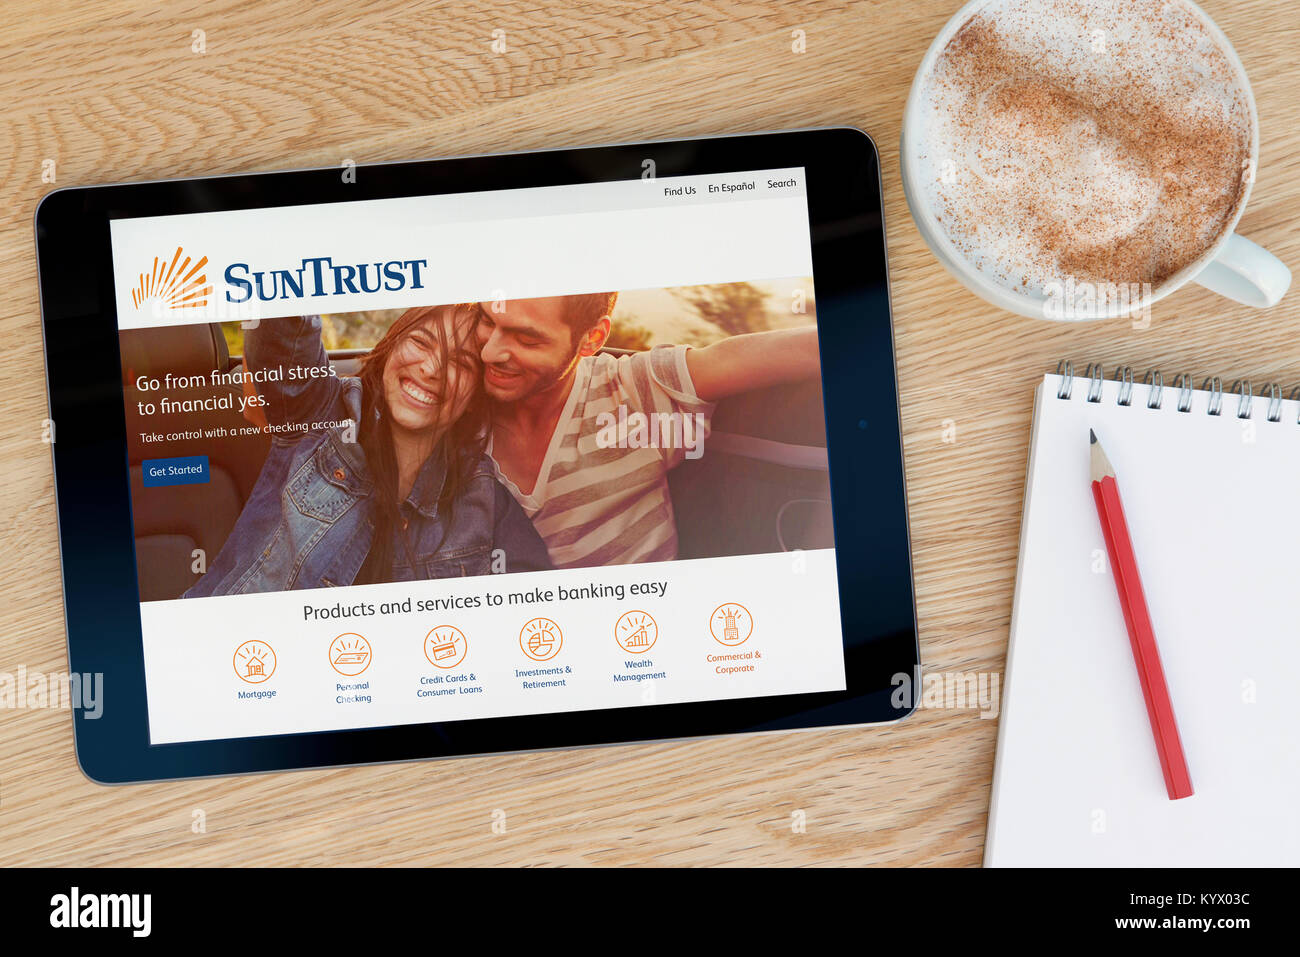 The SunTrust Banks website on an iPad tablet, on a wooden table beside a notepad, pencil and cup of coffee (Editorial - Stock Image